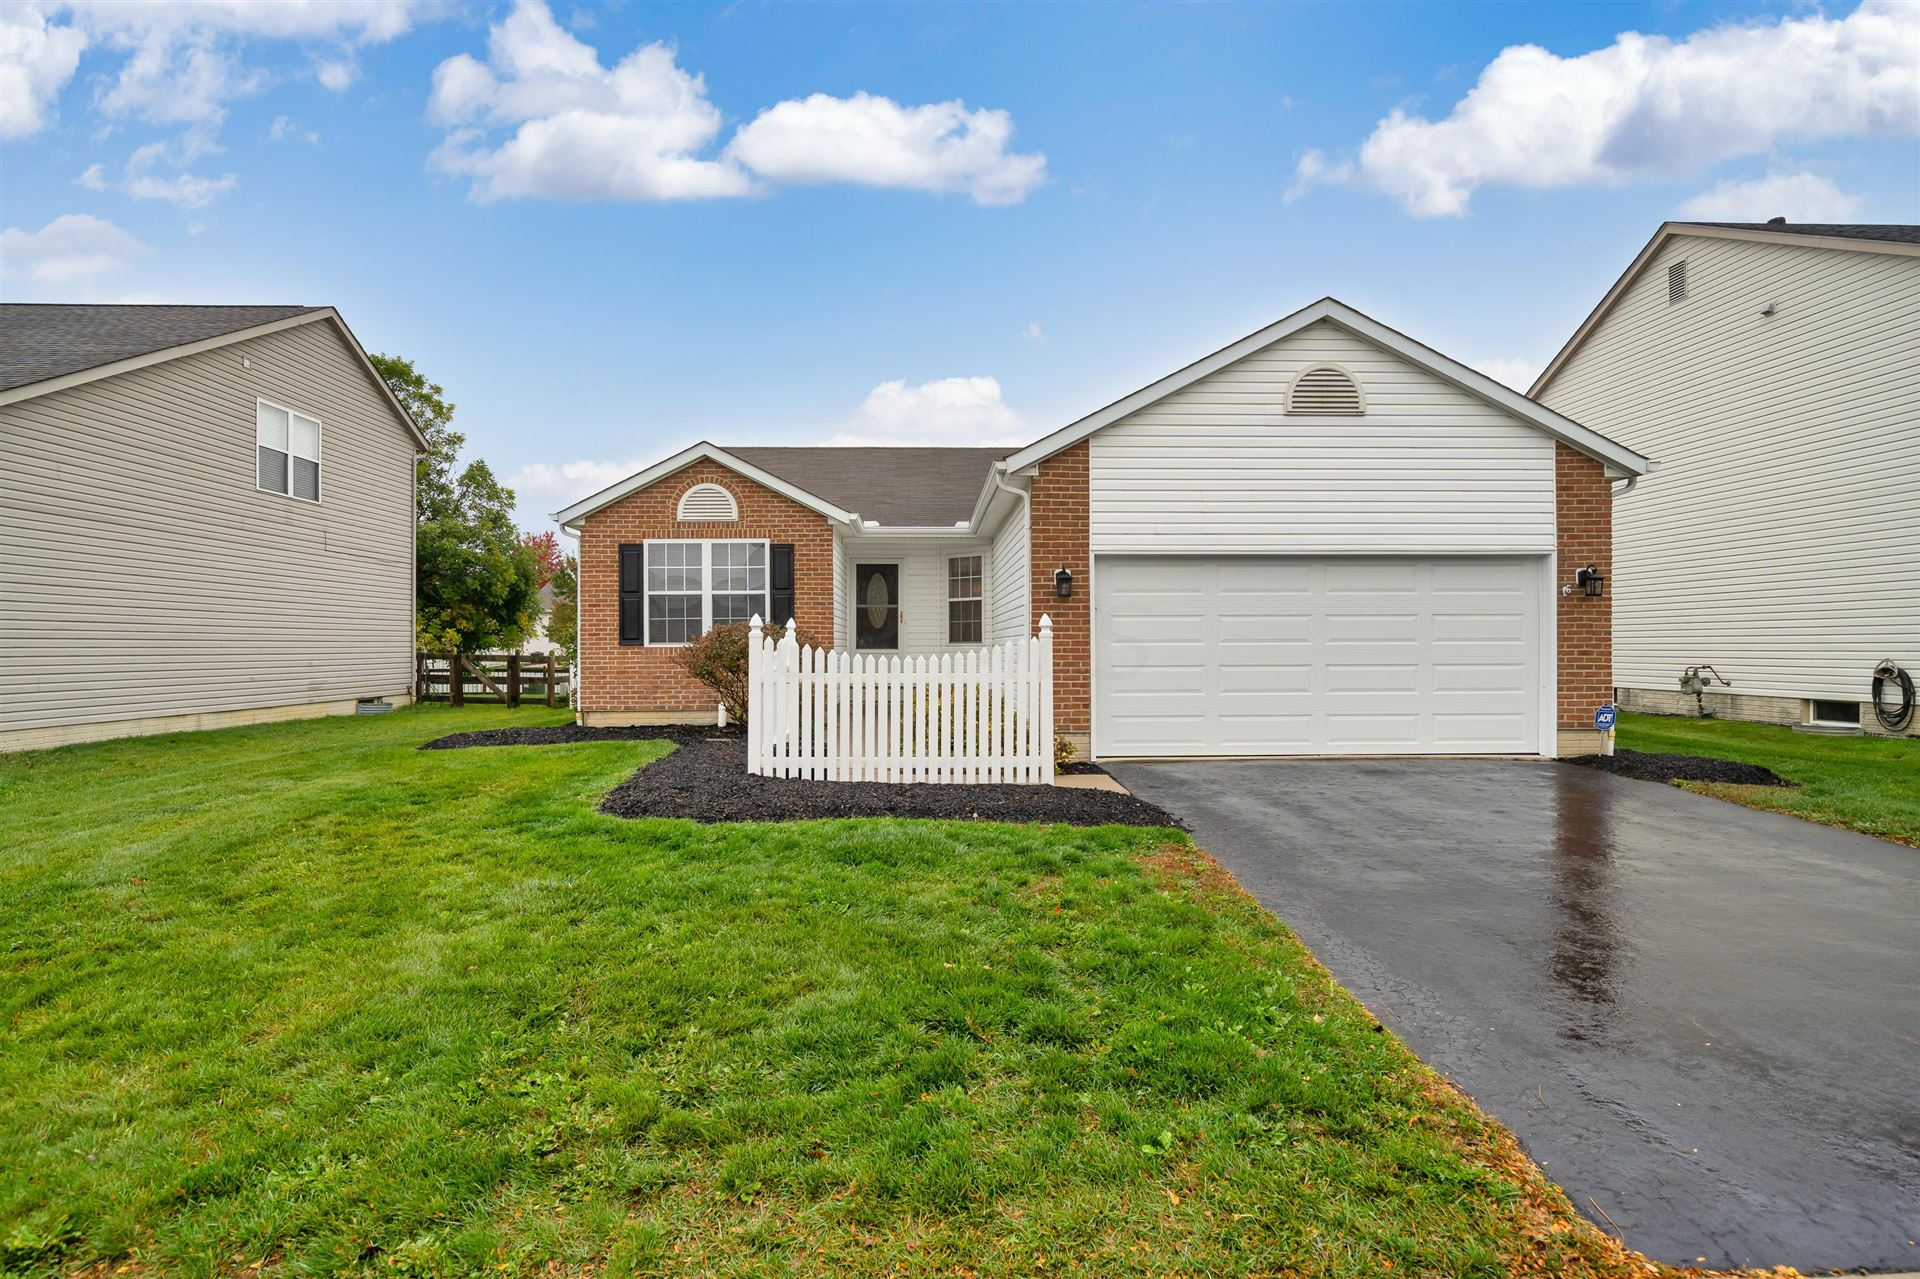 Photo of 949 Brittany Drive, Delaware, OH 43015 (MLS # 220038472)